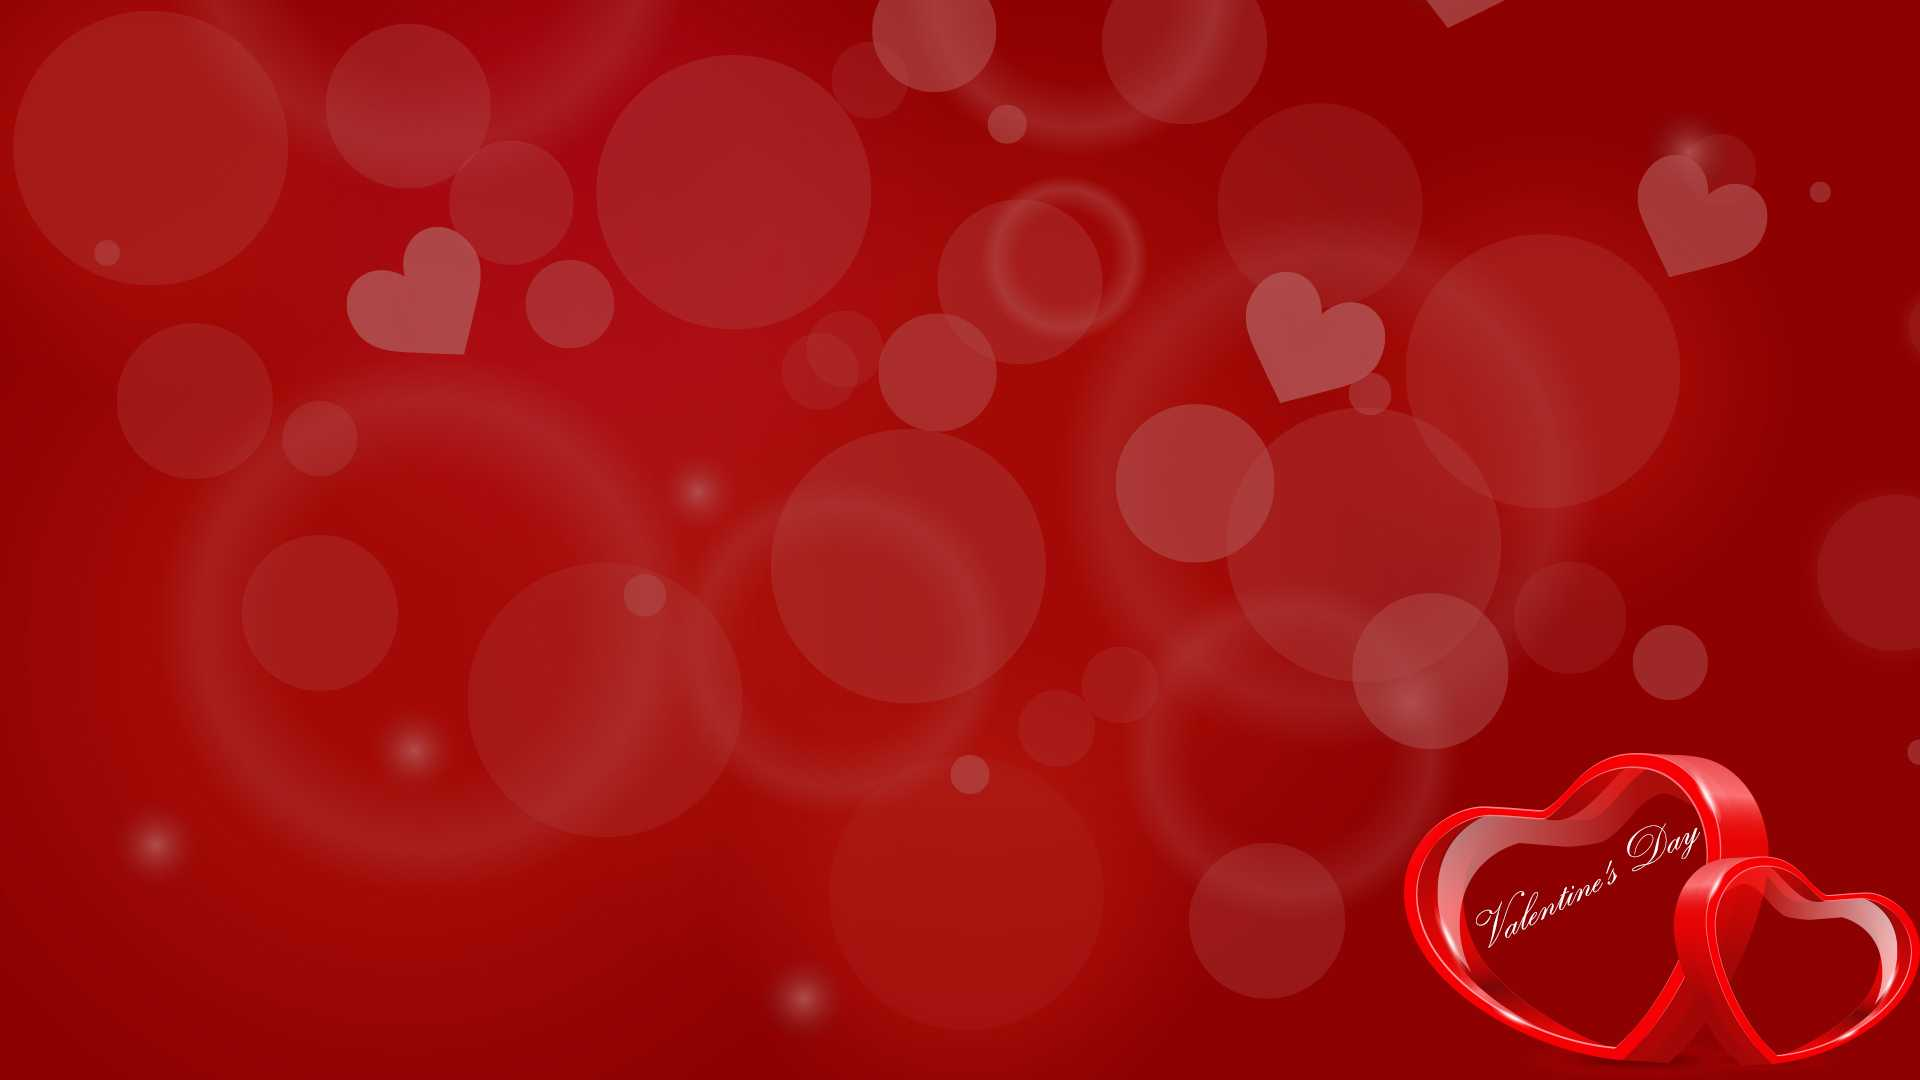 Valentines Day Heart Backgrounds For Powerpoint - Love Ppt for Valentine Powerpoint Templates Free